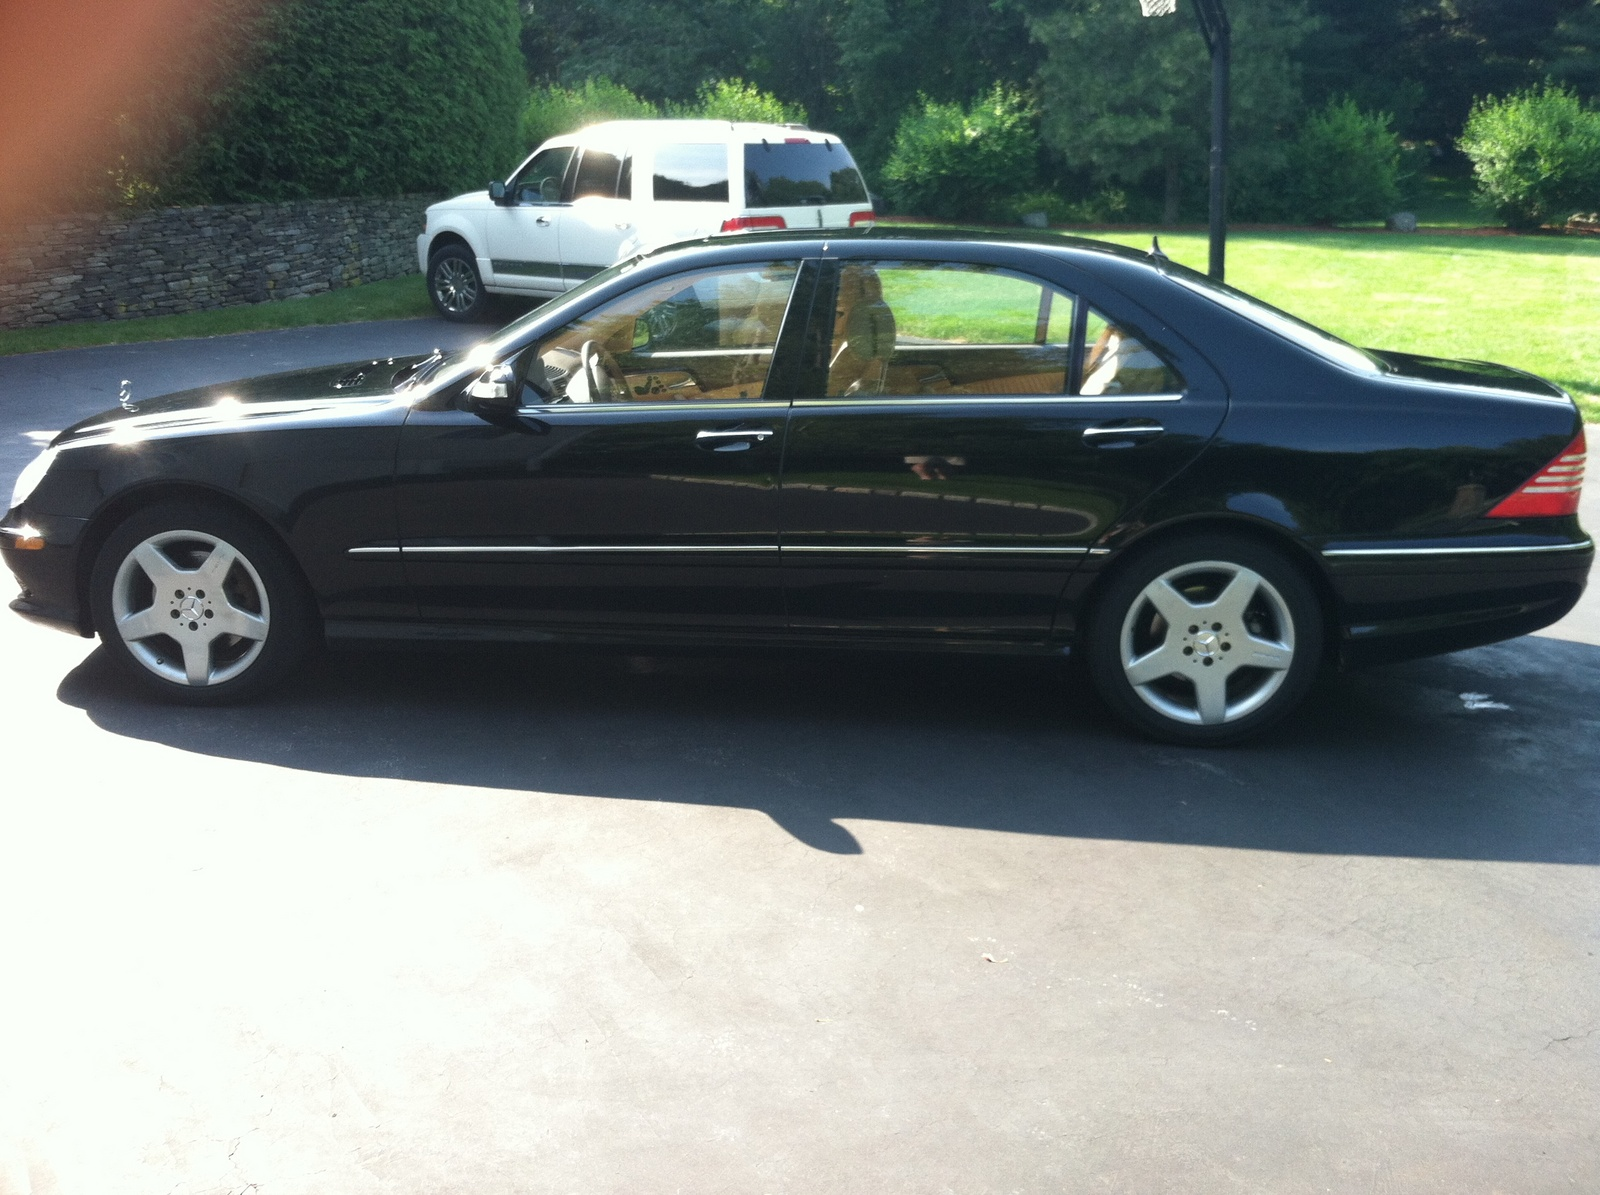 2005 mercedes benz s class pictures cargurus for Mercedes benz s500 price